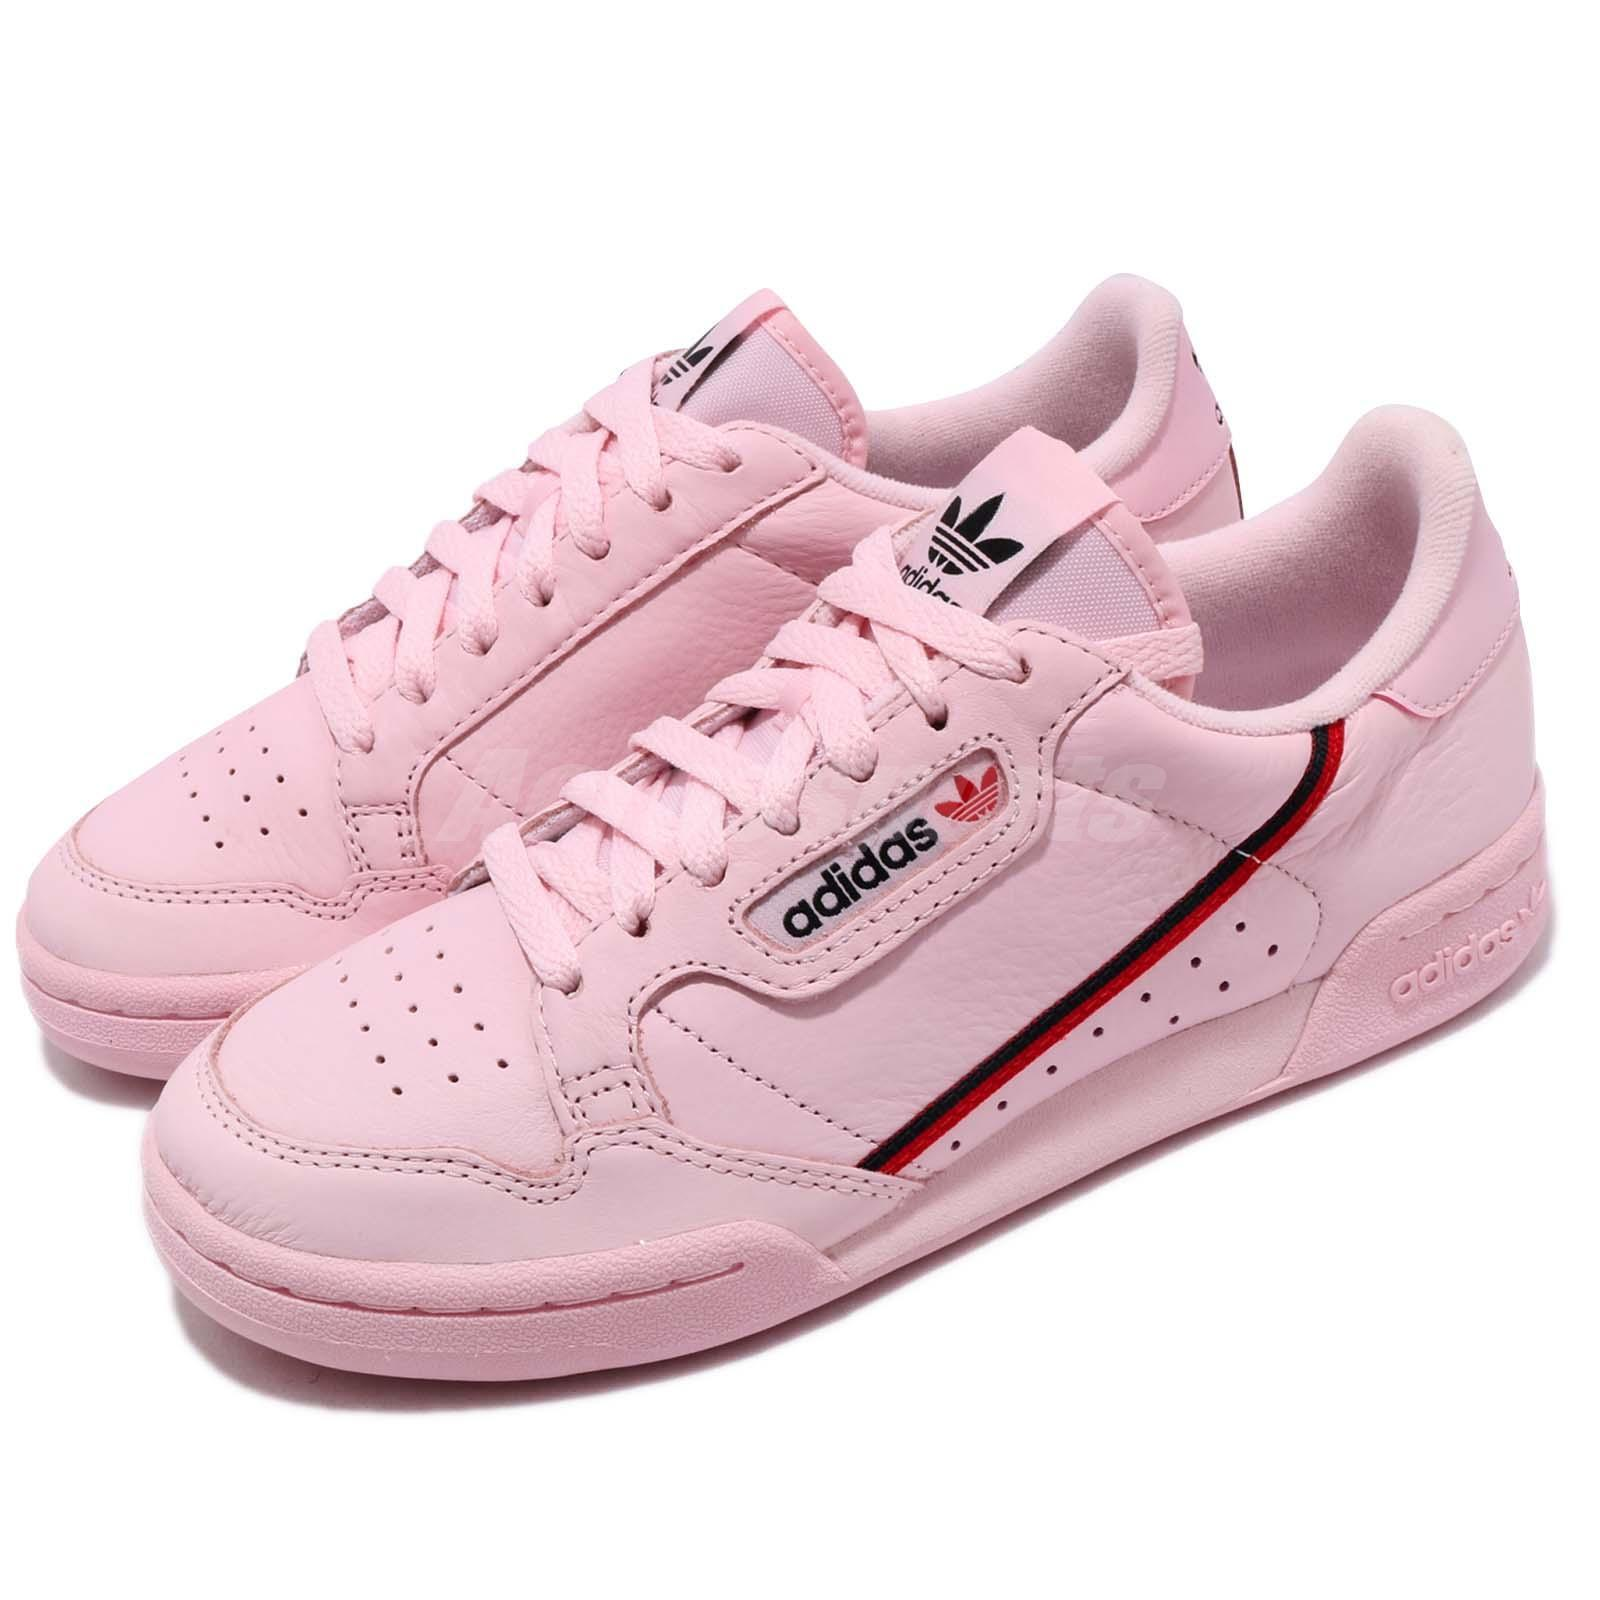 adidas Originals Continental 80 Pink Scarlet Navy homme Femme Casual chaussures B41679